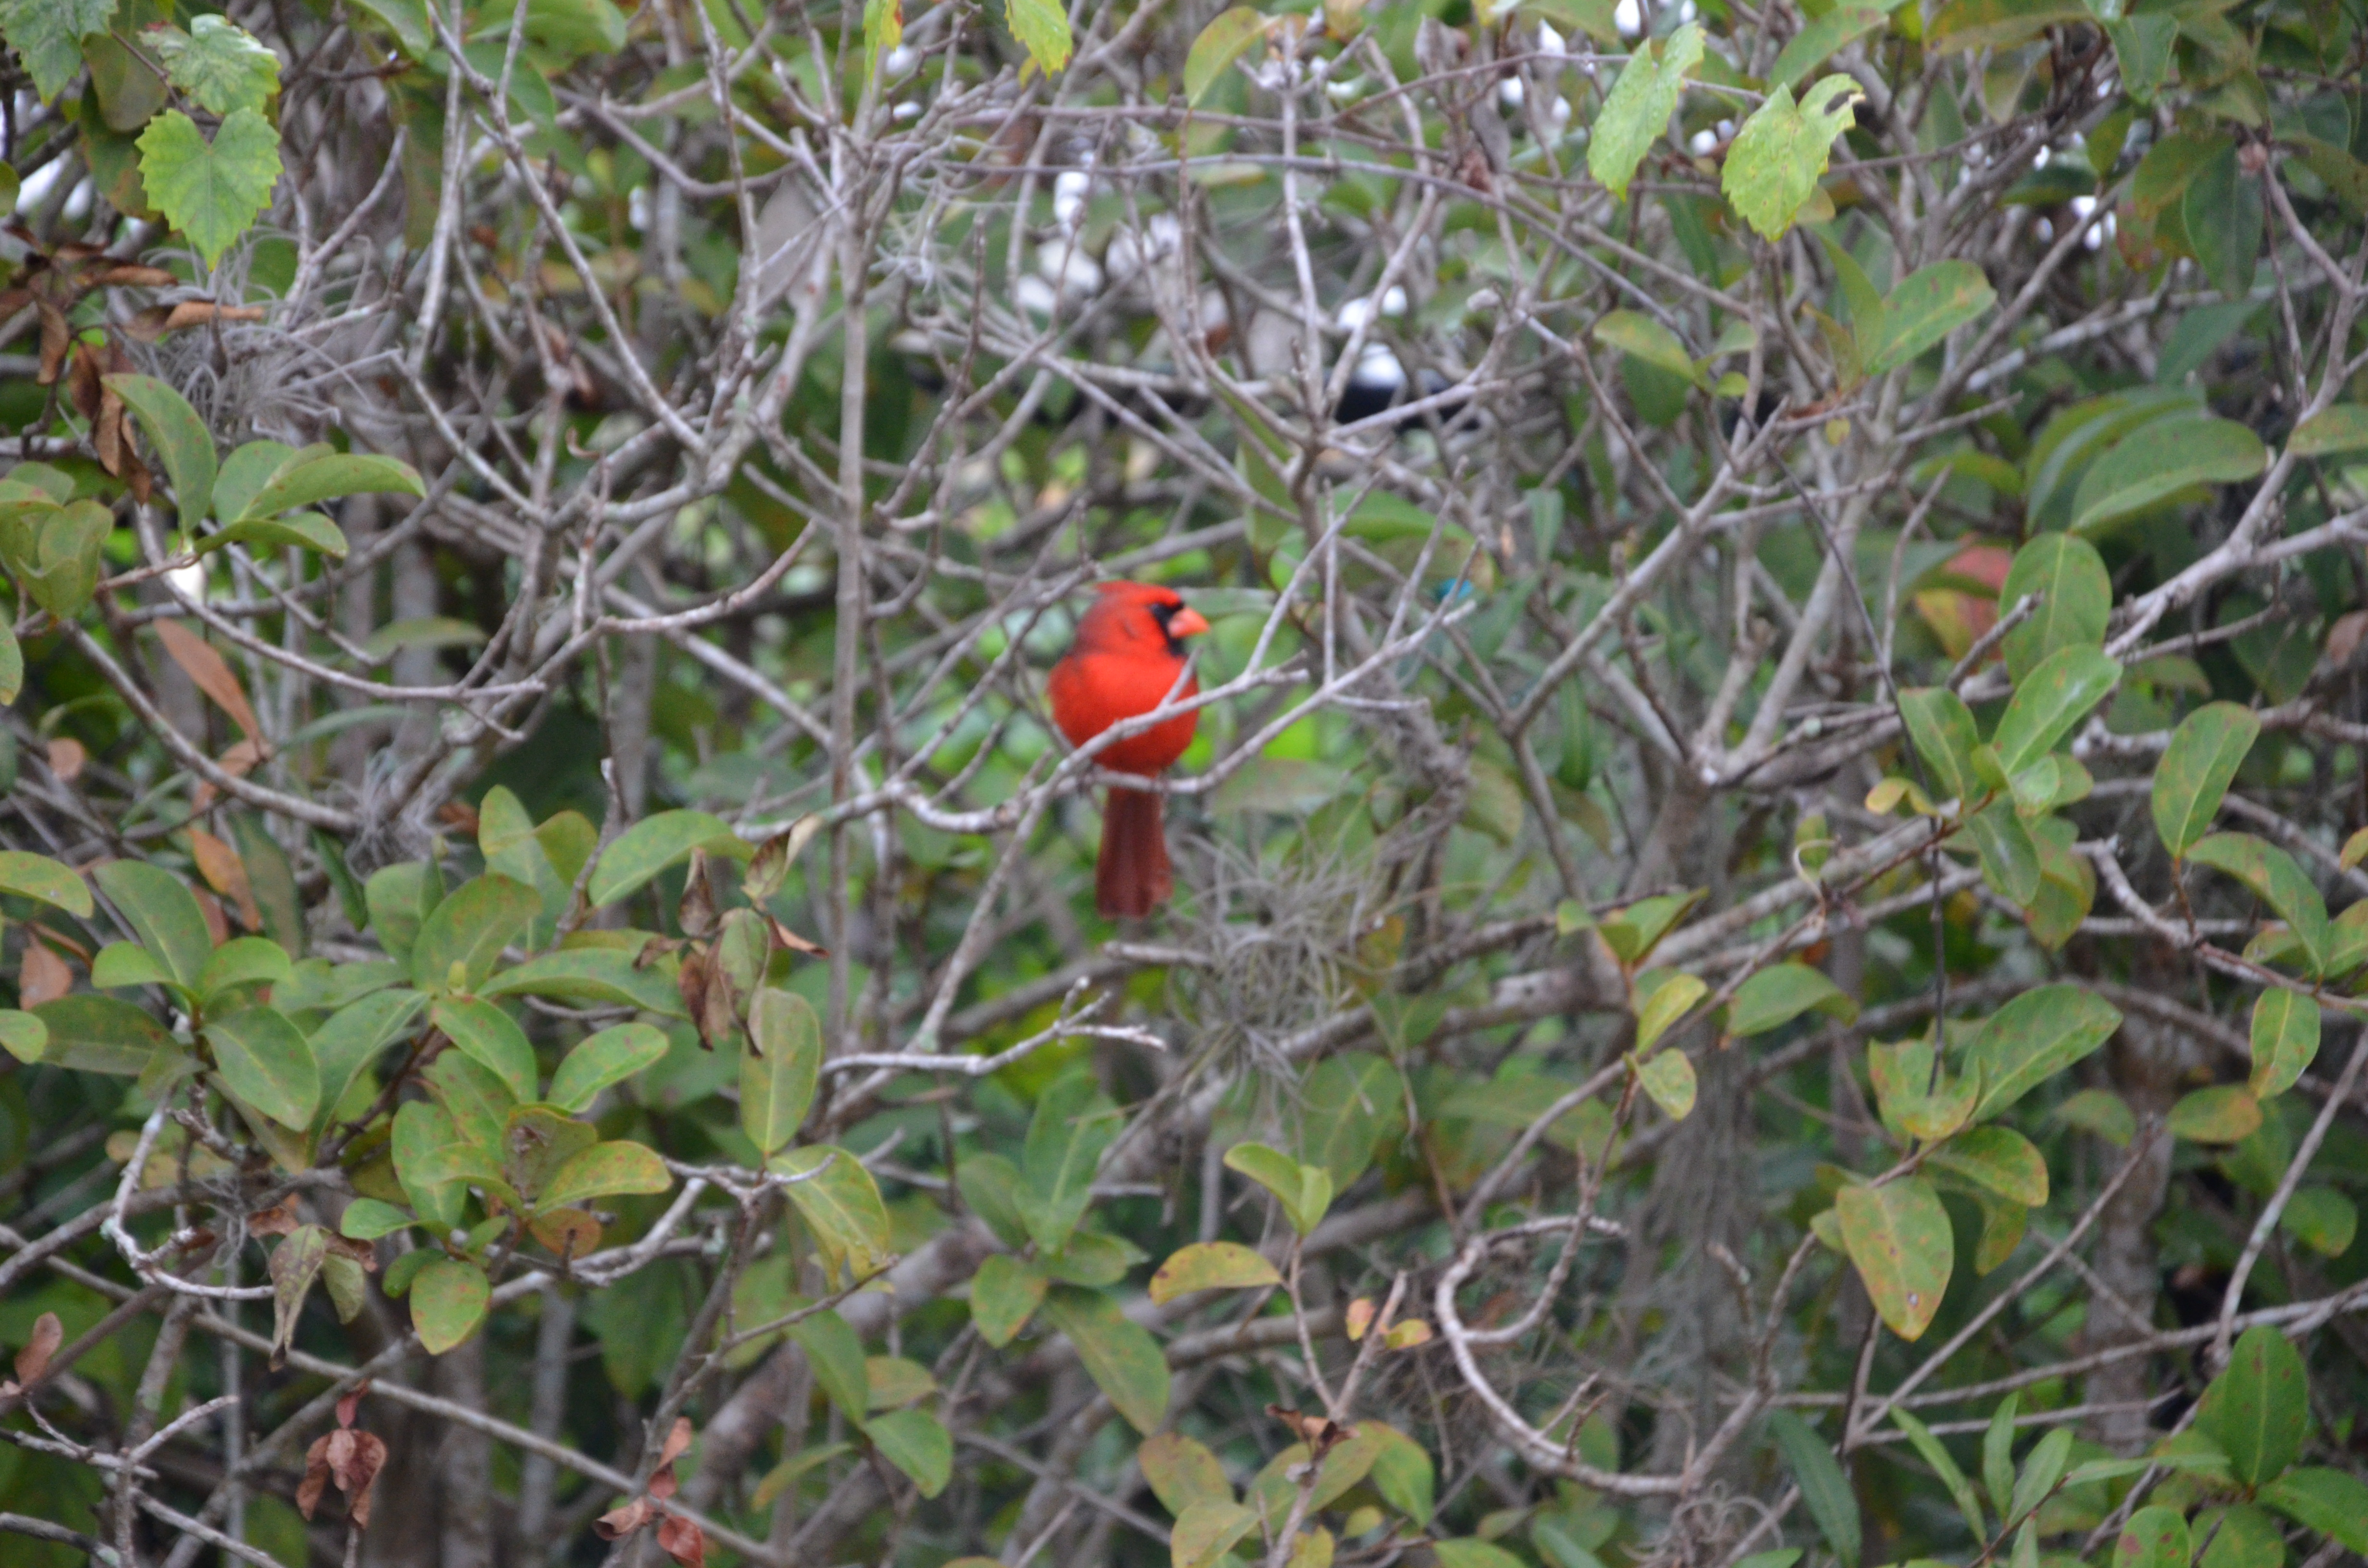 A Cardinal in the bush.